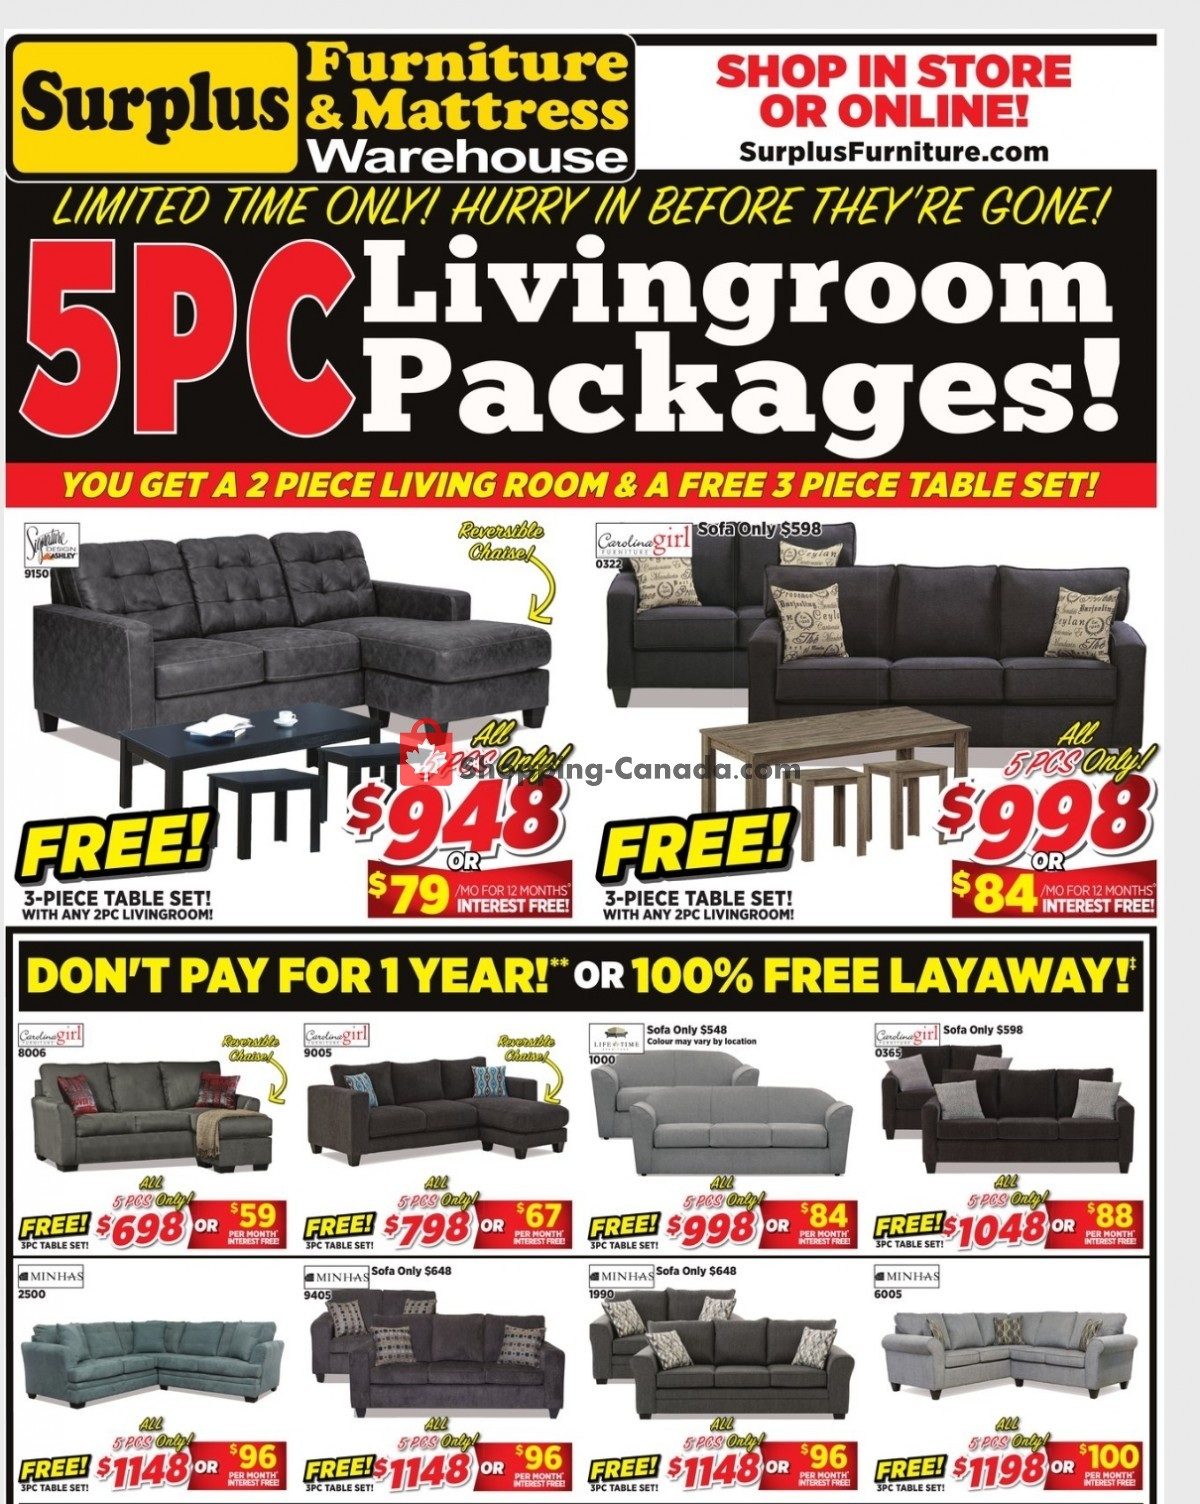 Flyer Surplus Furniture And Mattress Store Canada - from Monday March 29, 2021 to Sunday April 4, 2021